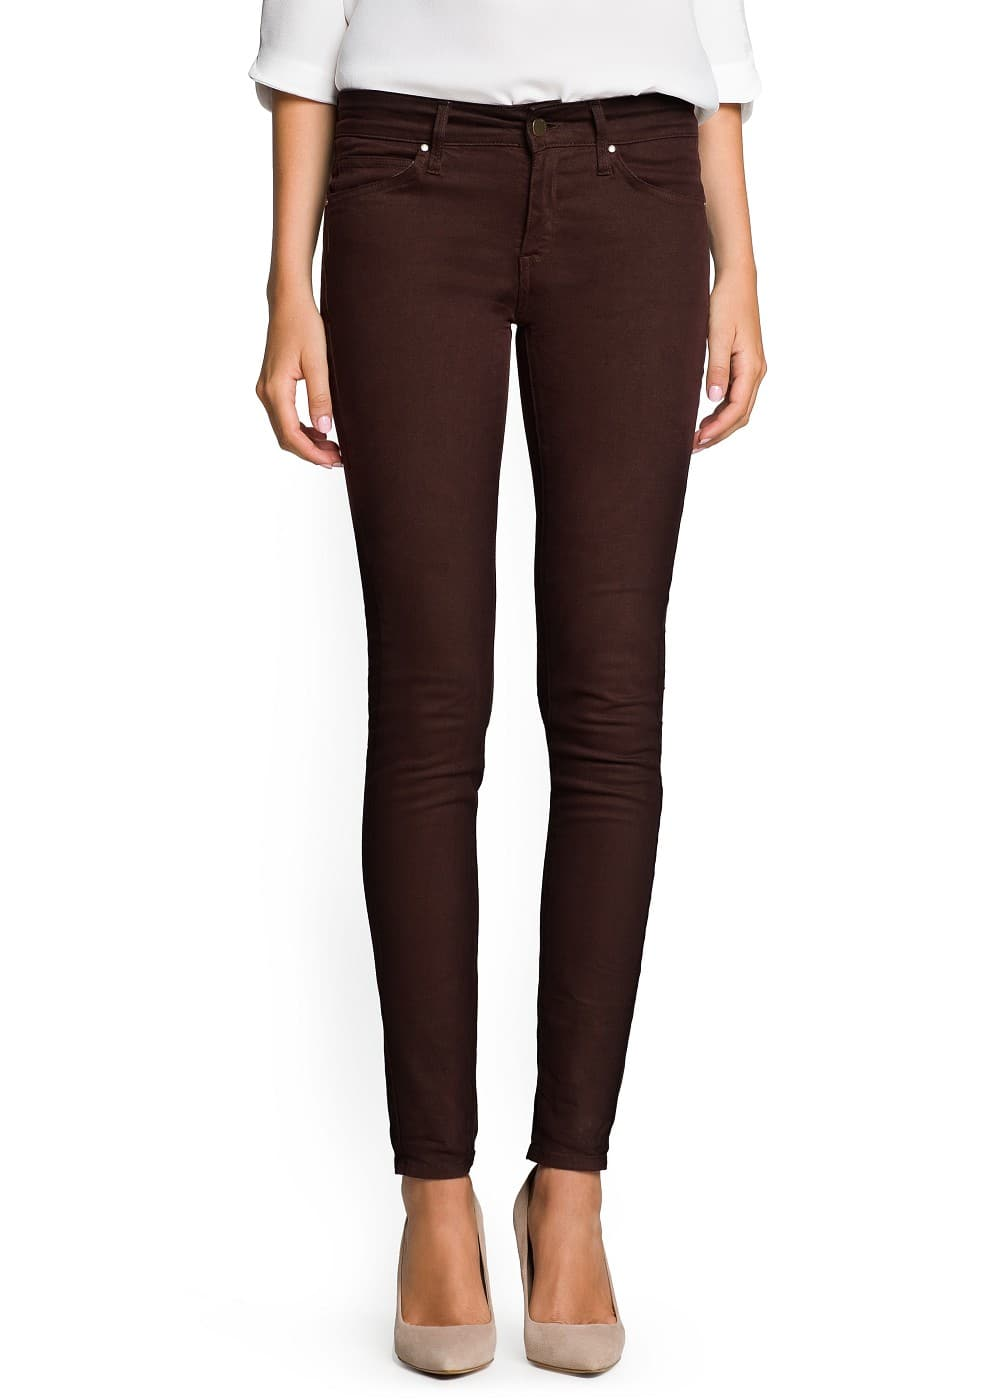 Super slim-fit brown jeans